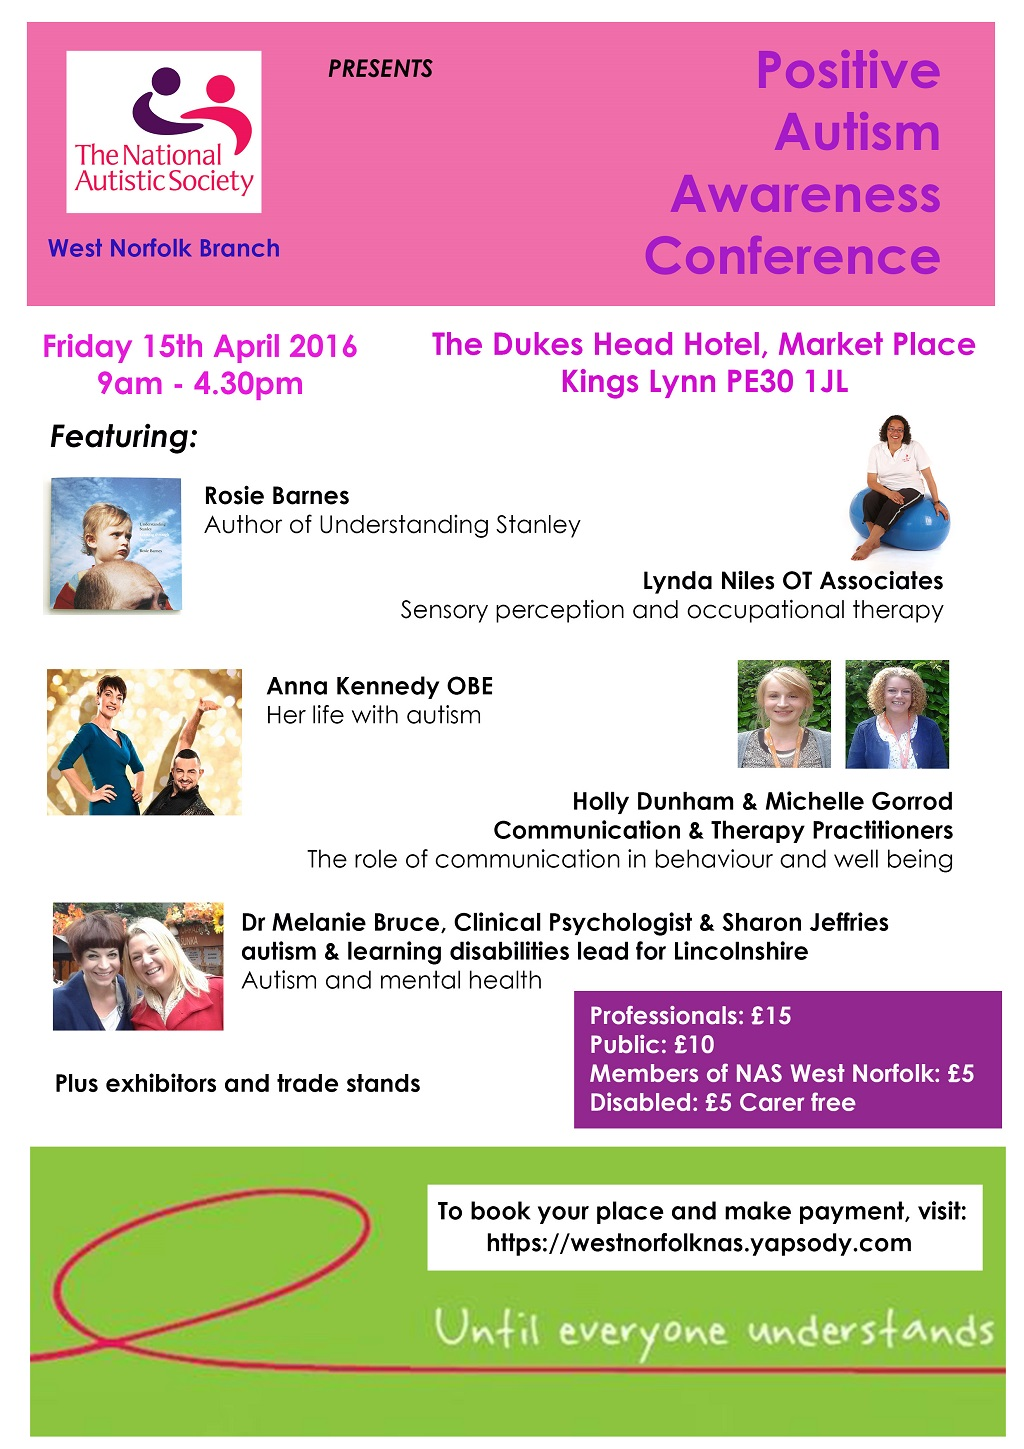 Positive Autism Awareness Conference Now Open For Bookings